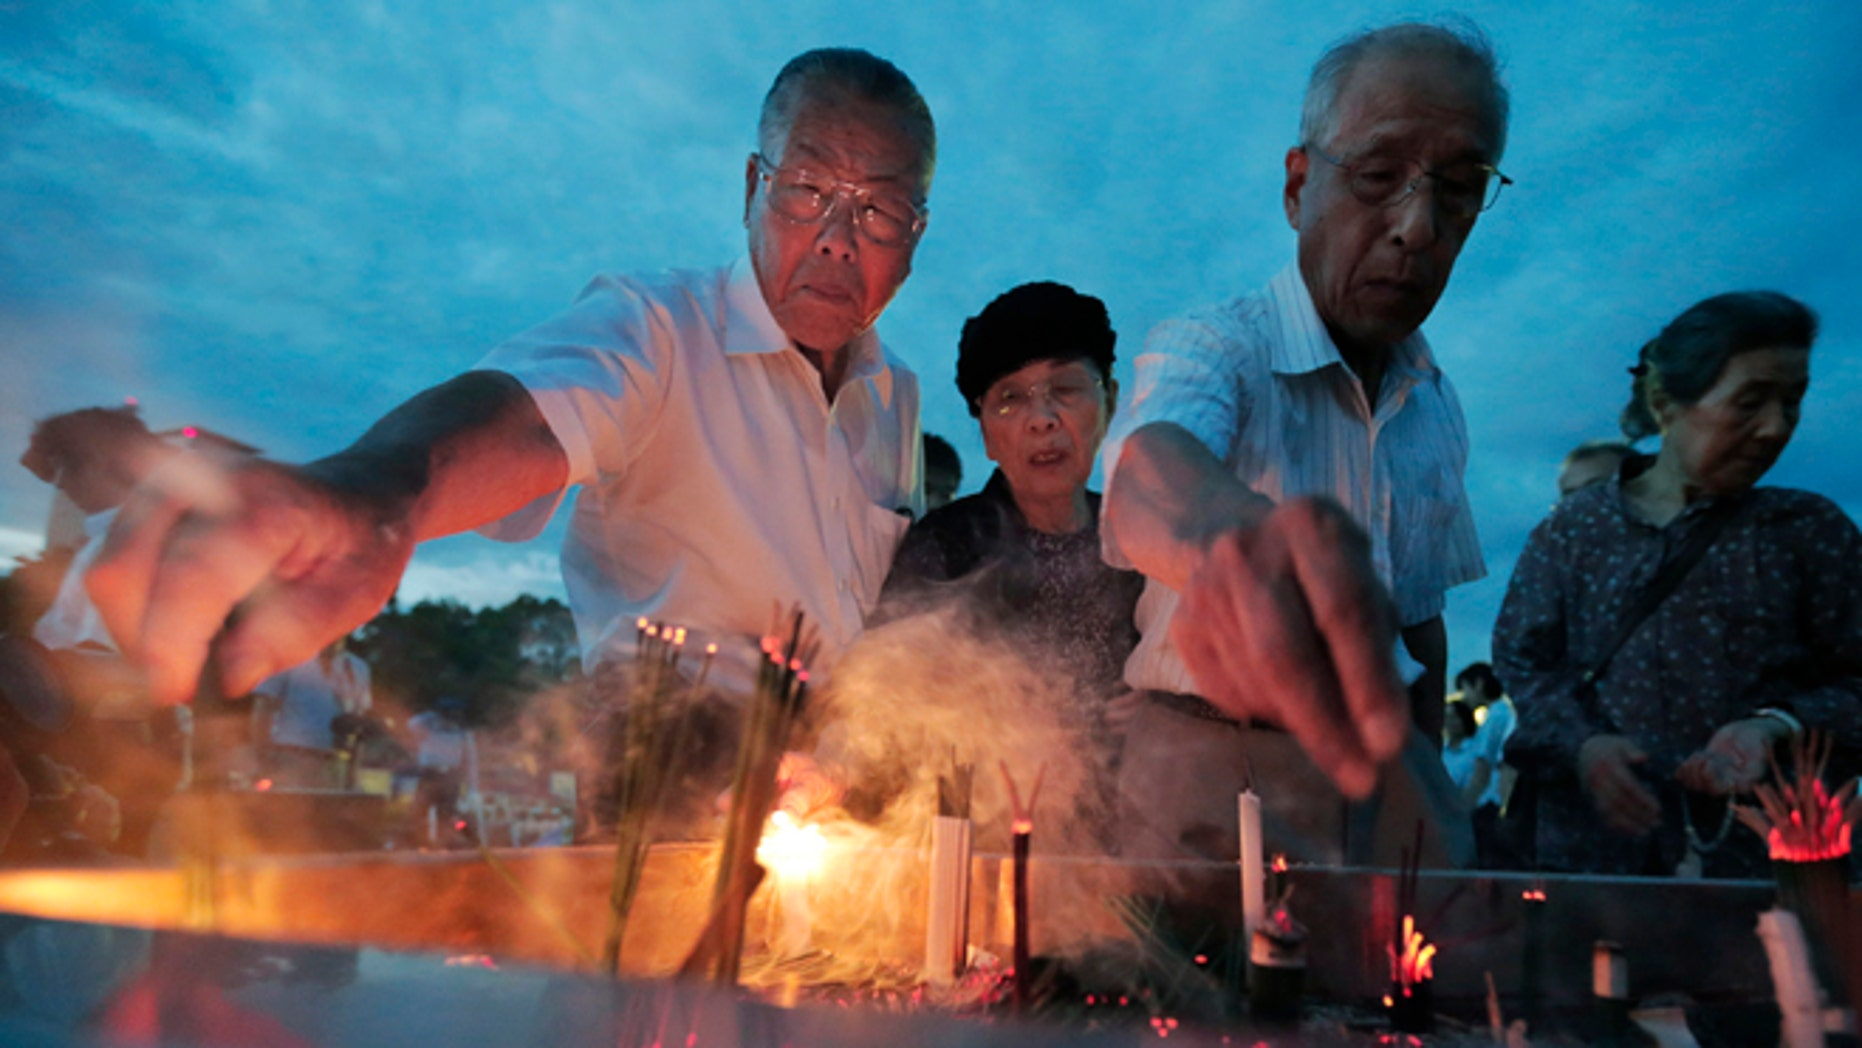 Aug. 6, 2012: People burn incenses and pray in front of the cenotaph dedicated to the victims of the atomic bombing at the Peace Memorial Park as they mark the 67th anniversary of the world's first atomic bombing, in Hiroshima, western Japan.